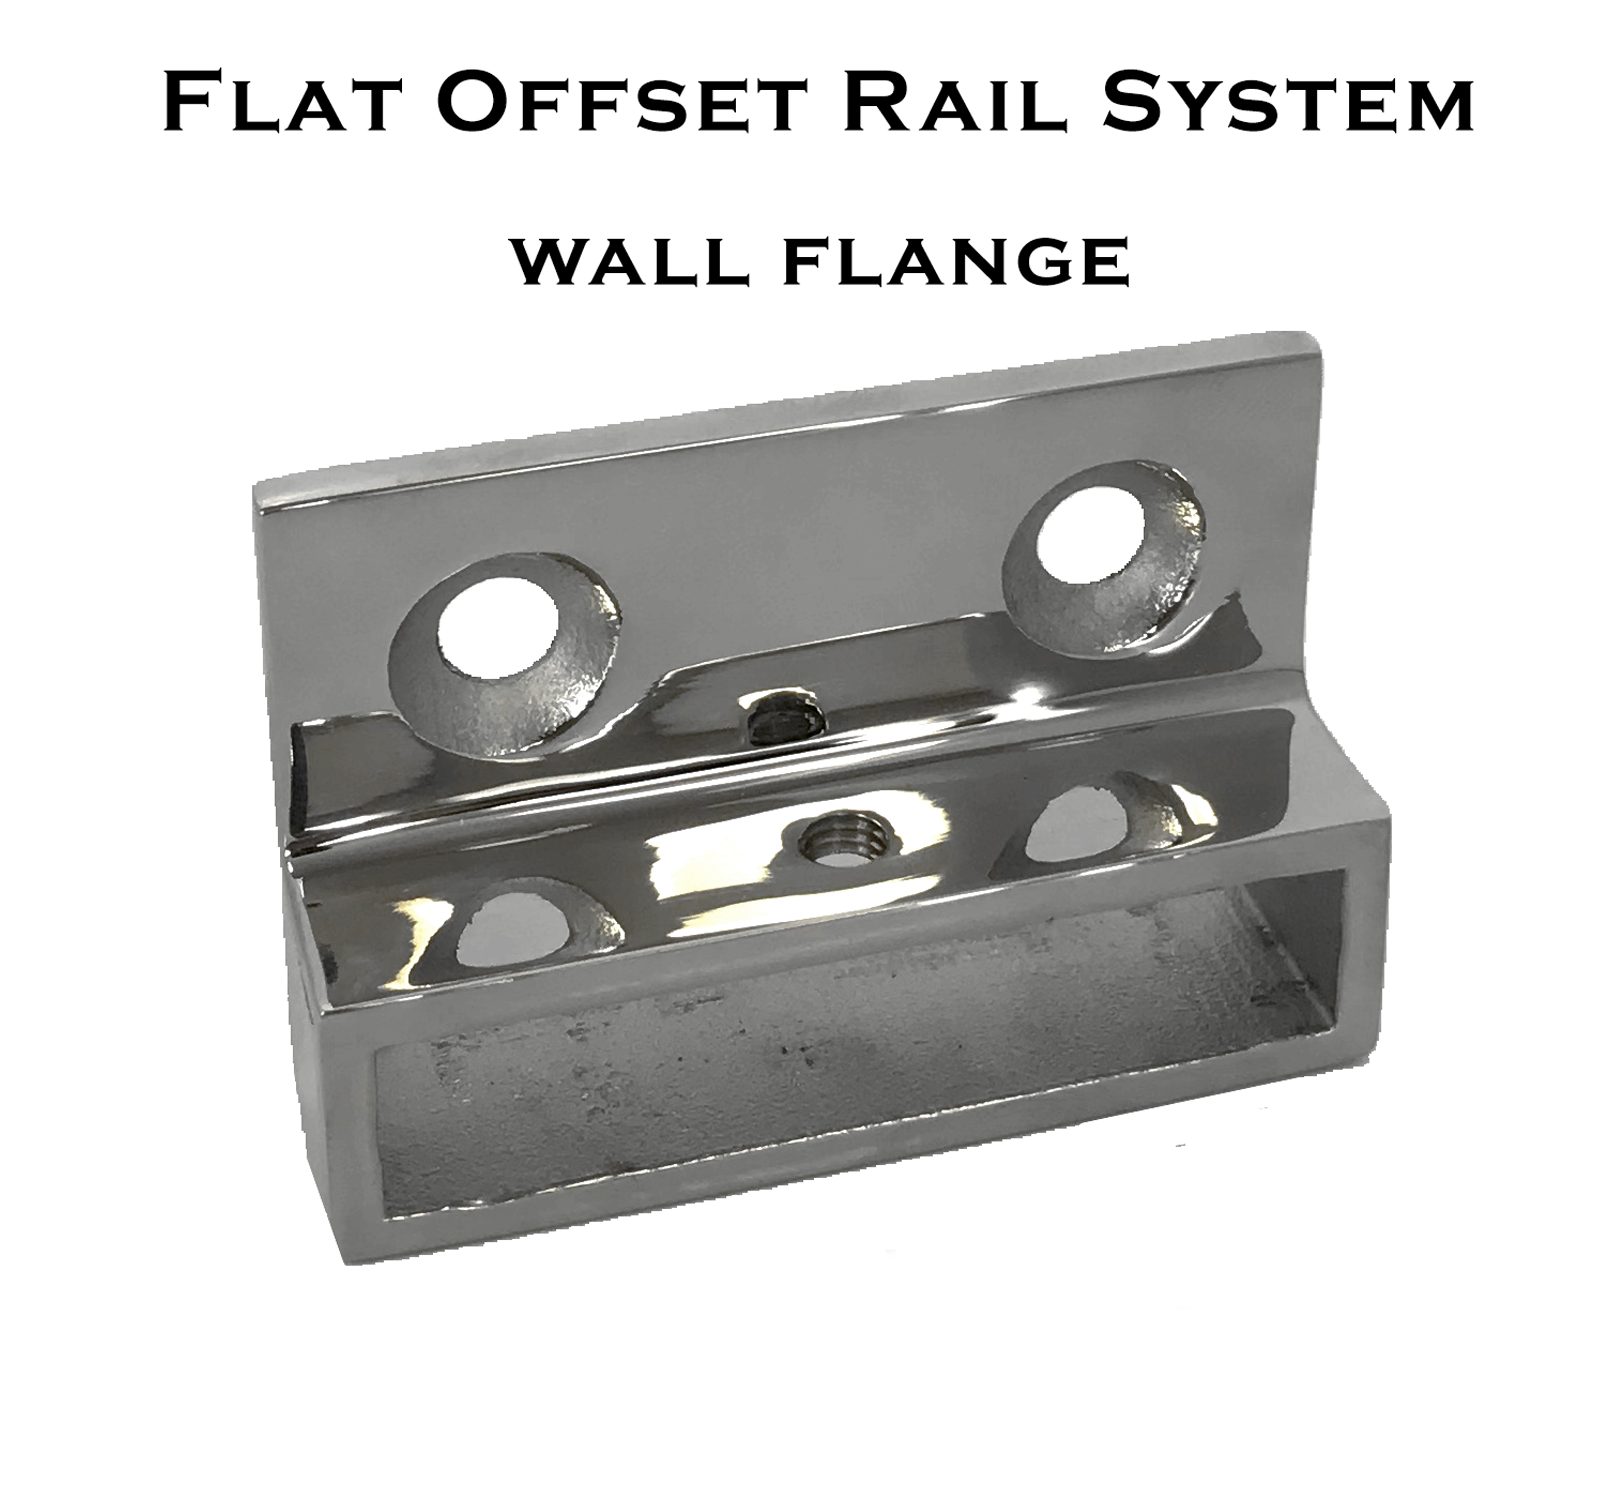 wall-flange-on-web.png